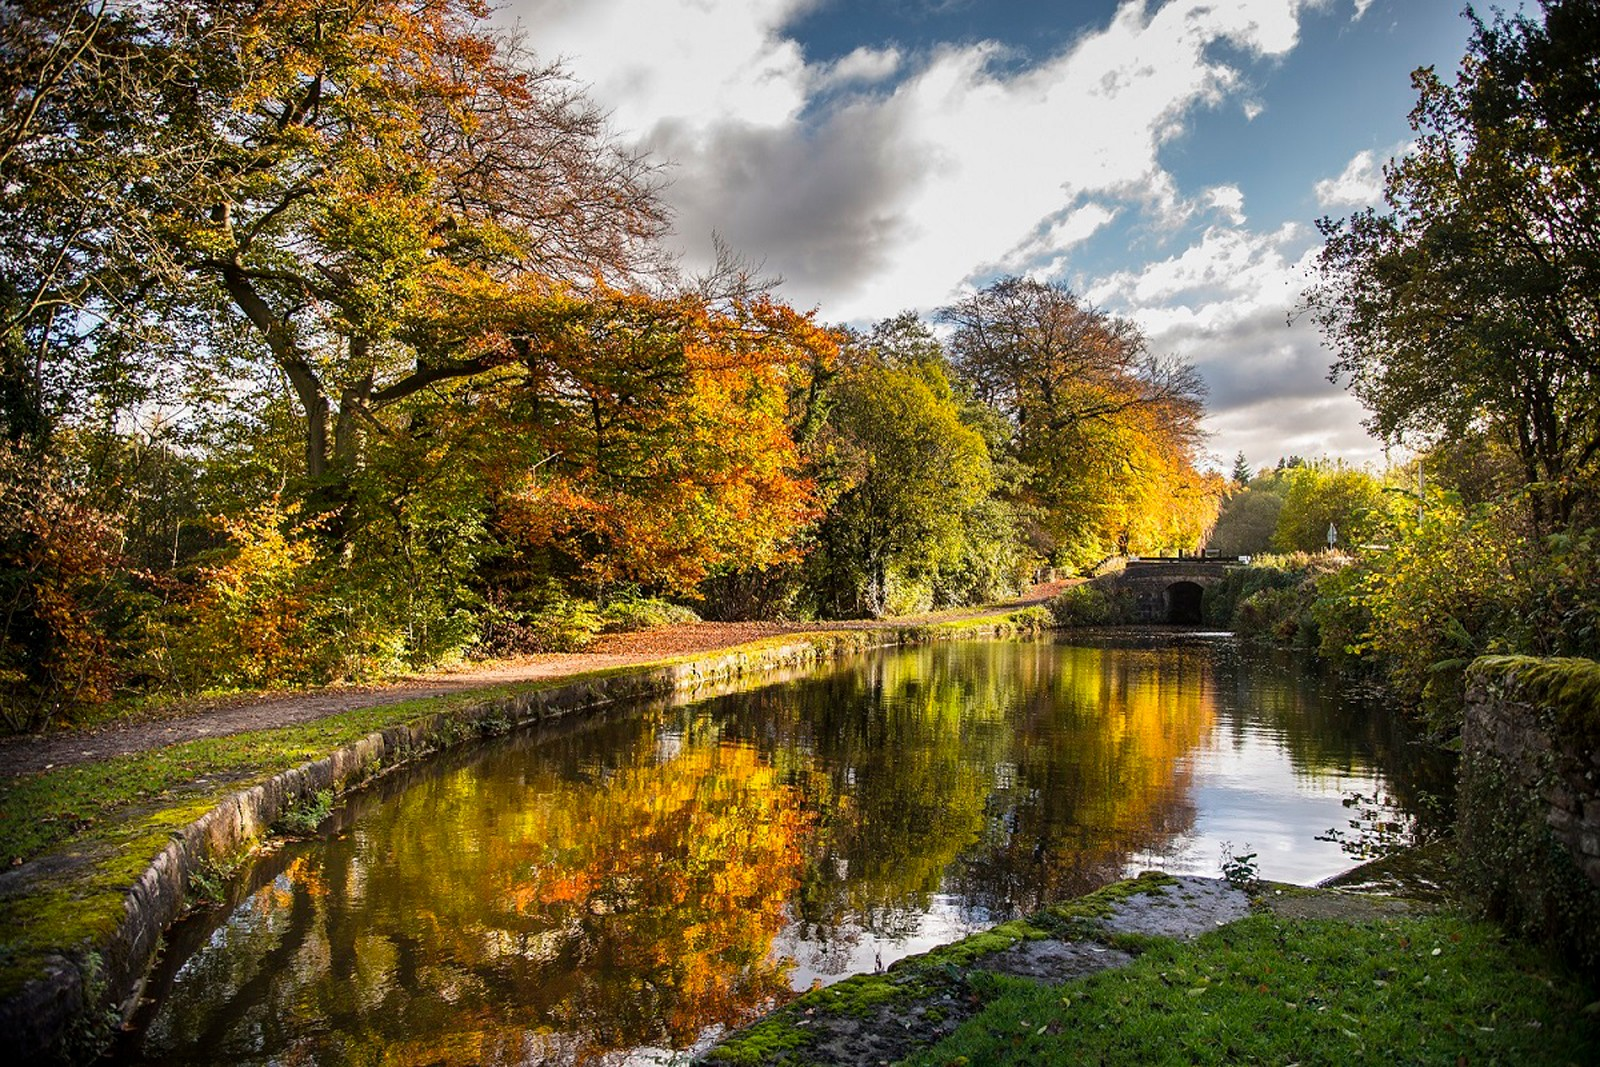 autumncolourscanalandrivertrust_0-989177e